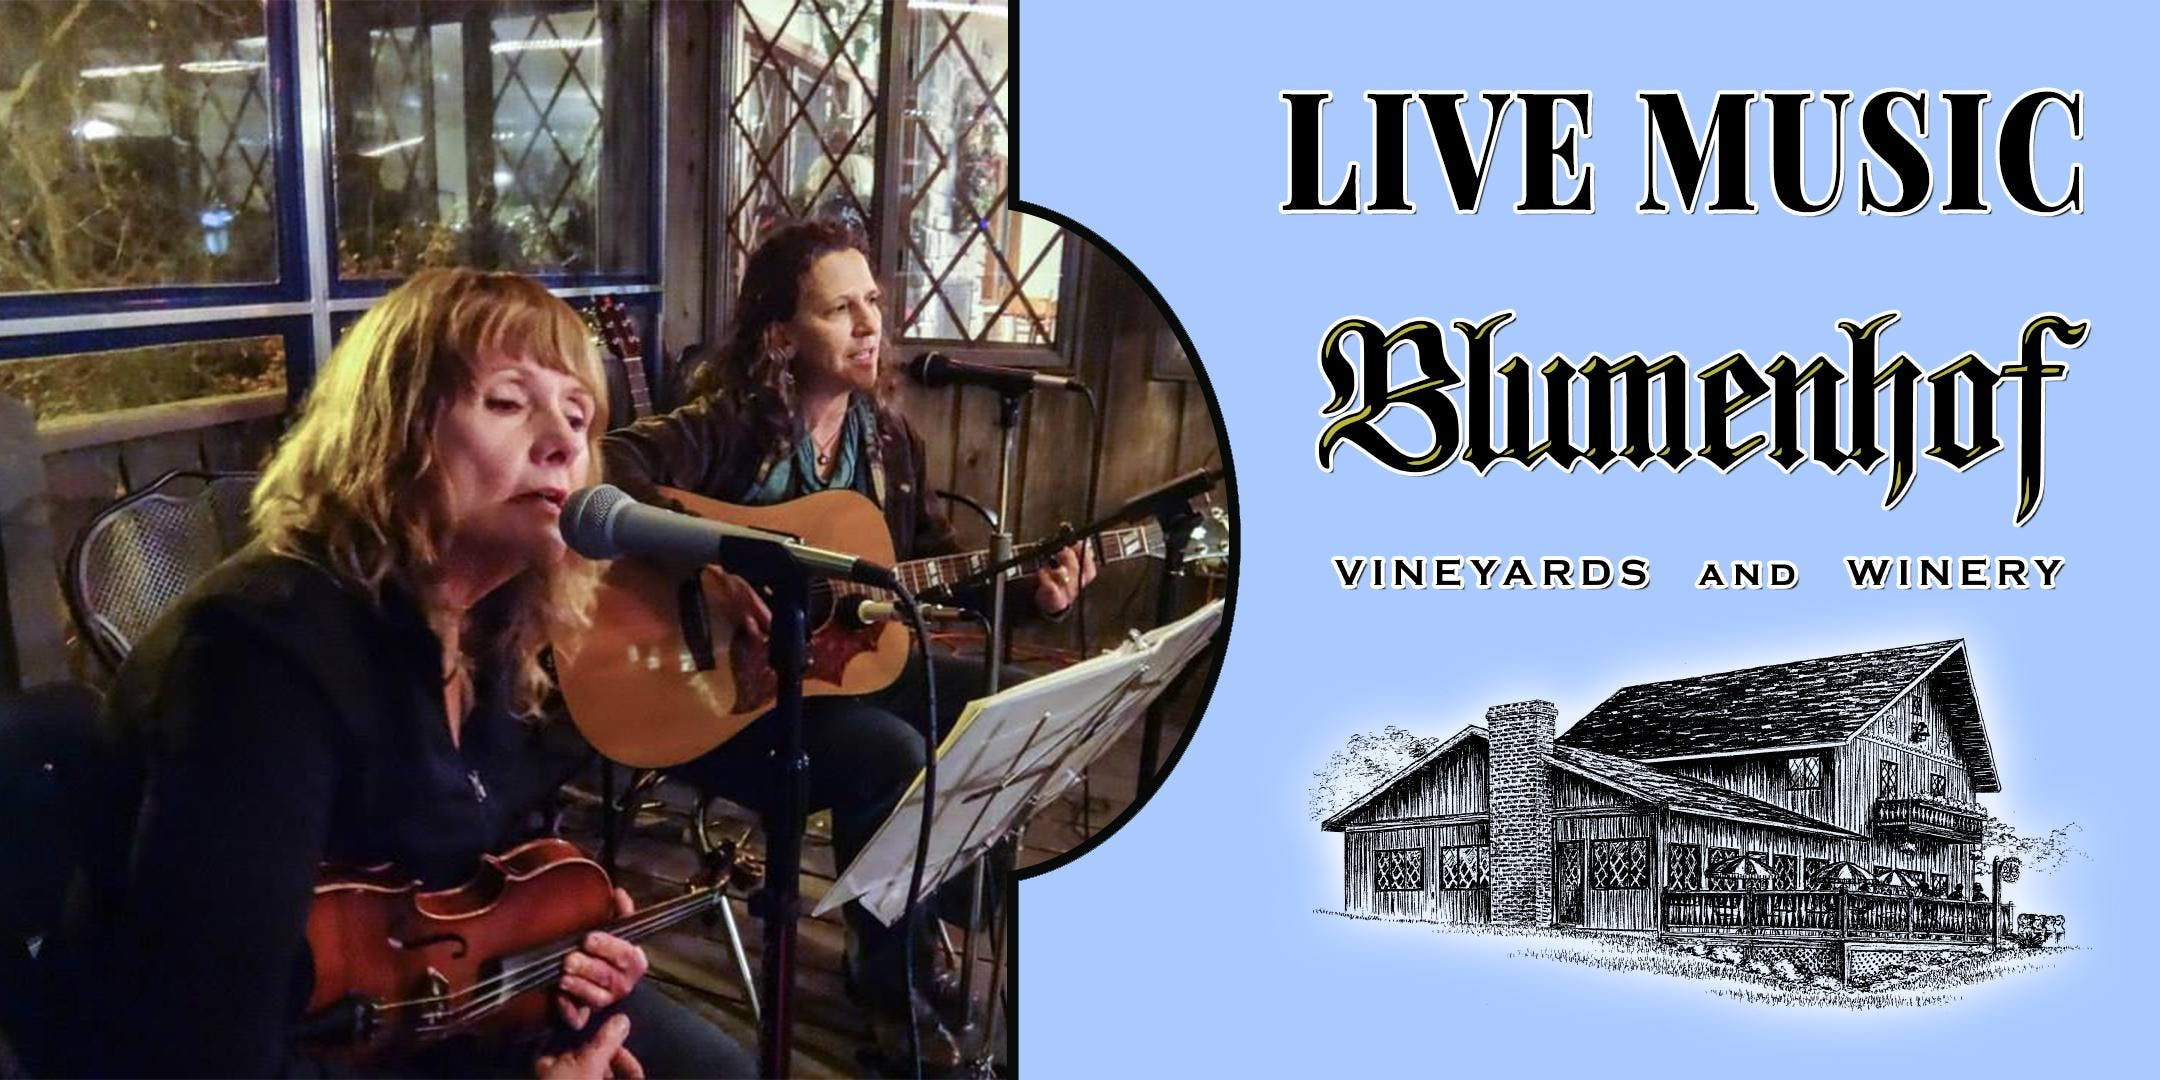 Downstream (folk music) at Blumenhof Winery